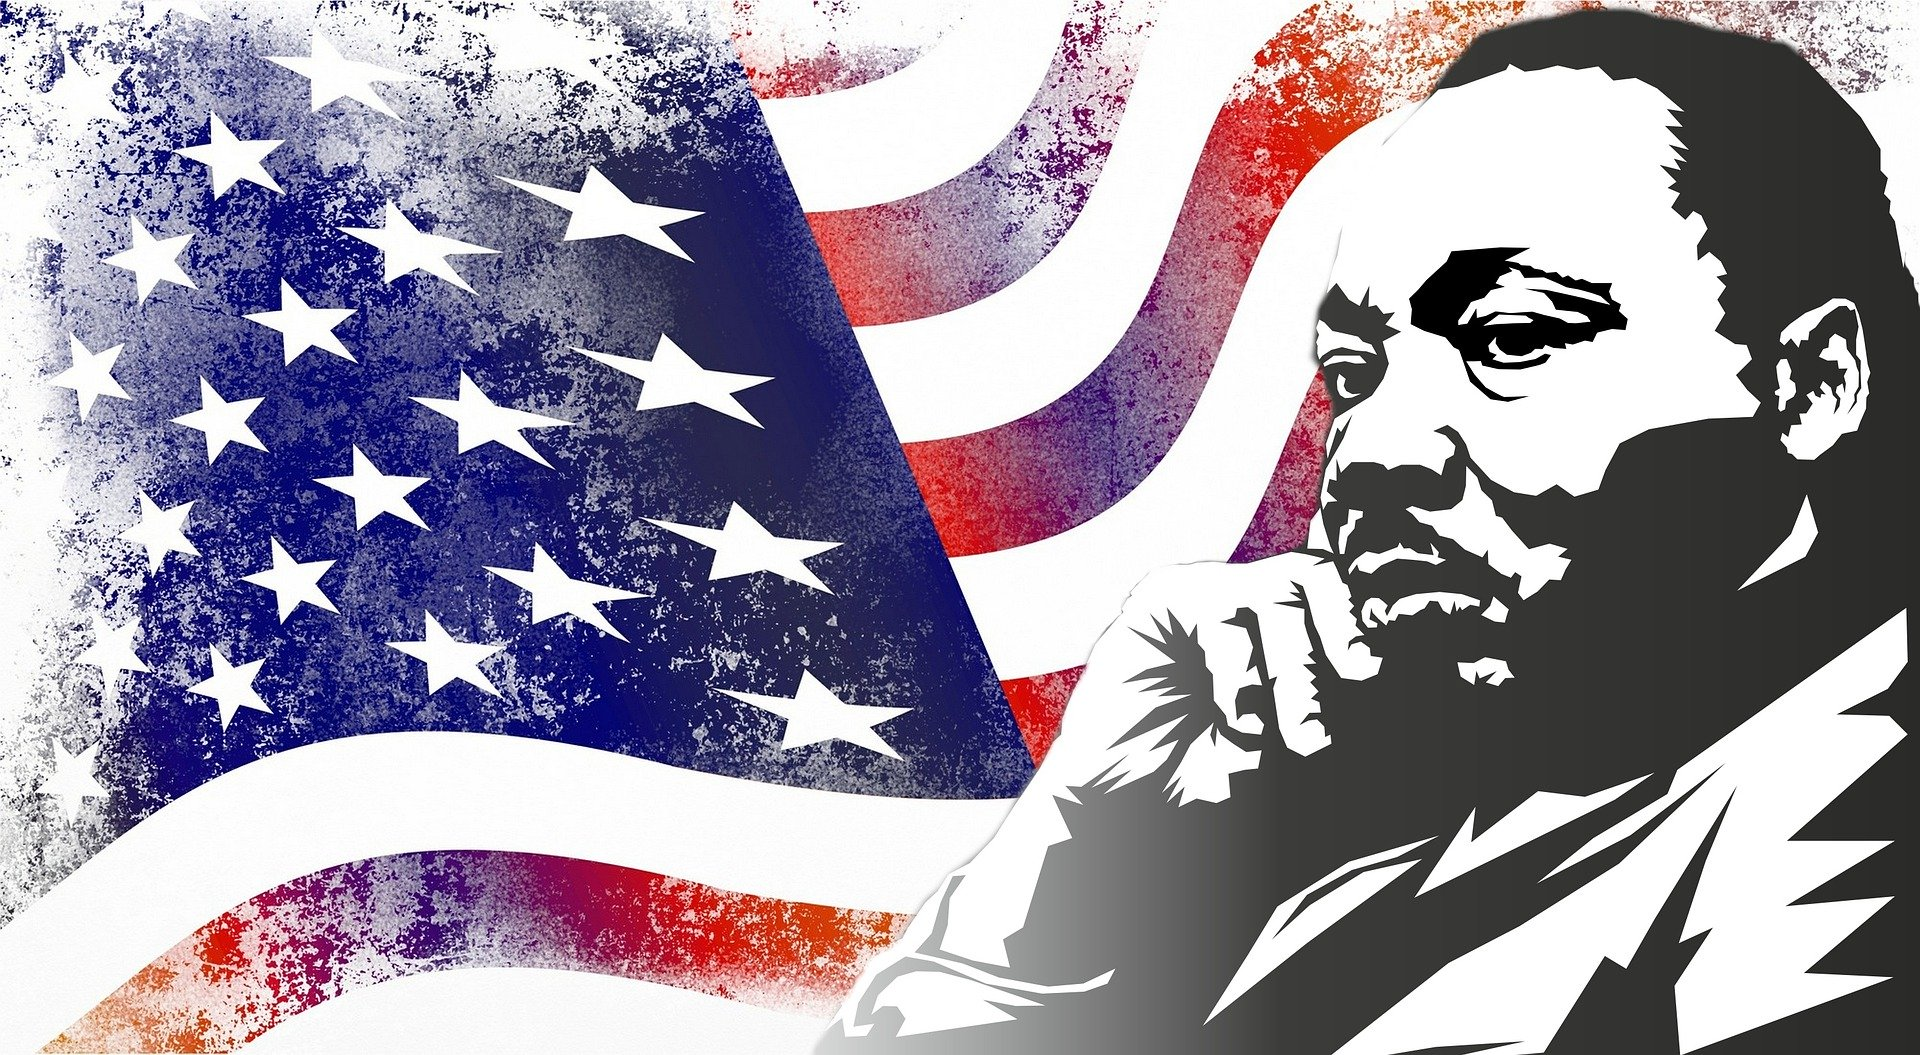 martin luther king jr day - photo #37